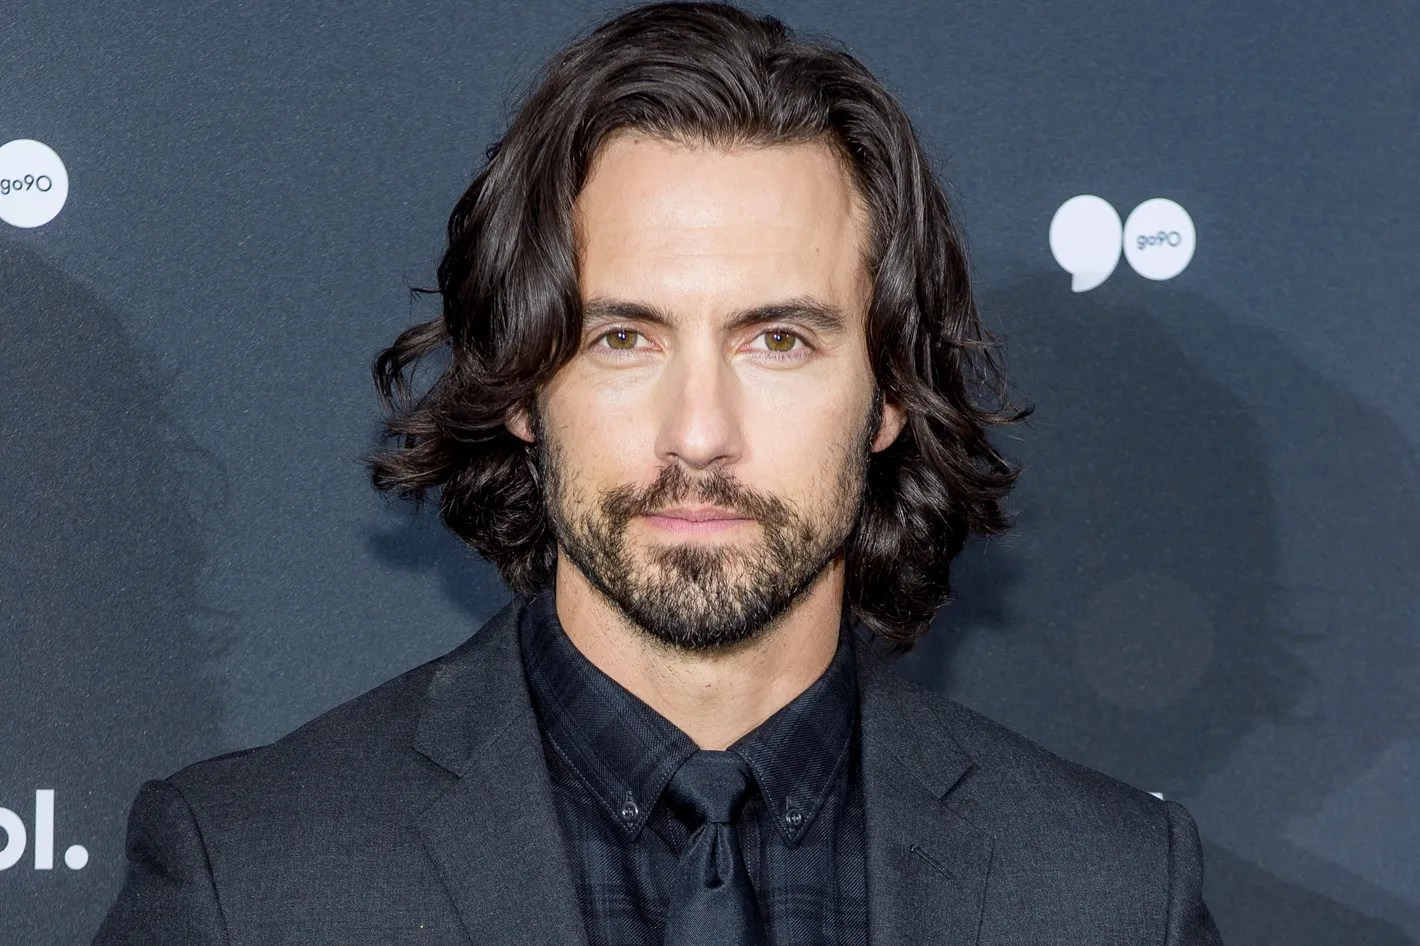 Milo Ventimiglia on What a Meetup of Gilmore Girls s Jess  Logan     Milo Ventimiglia on What a Meetup of Gilmore Girls s Jess  Logan  and Dean  Would Be Like